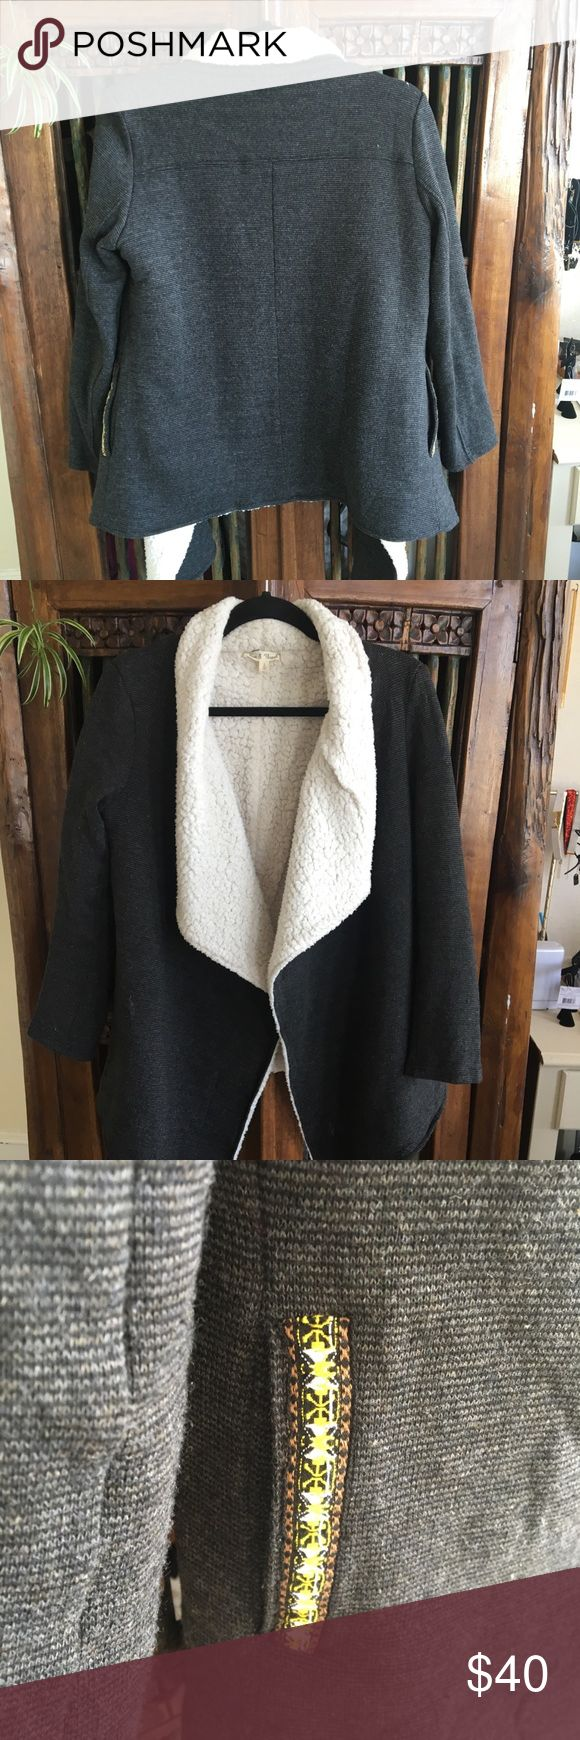 Shearling Mexican blanket style open jacket This open style shearling jacket/sweater is great for a sunny day where u don't need a jacket but want to be warm. The cute detail on the pocket I love. It's fully lined down the sleeves so gotta love that 🌸 Sweaters Shrugs & Ponchos